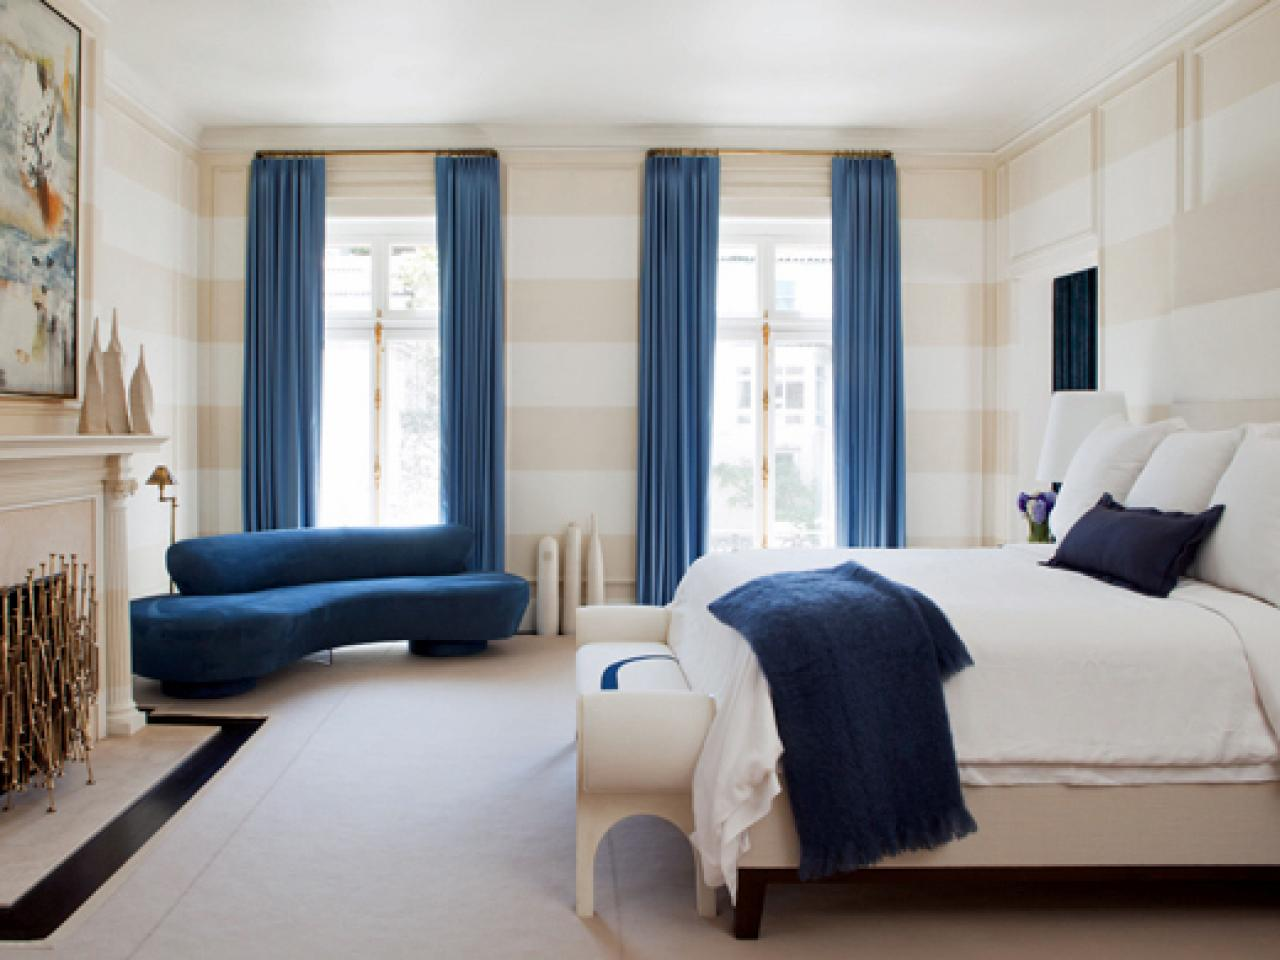 Stunning Blue Curtains for Window Treatment Completing White and Blue Coloring Scheme